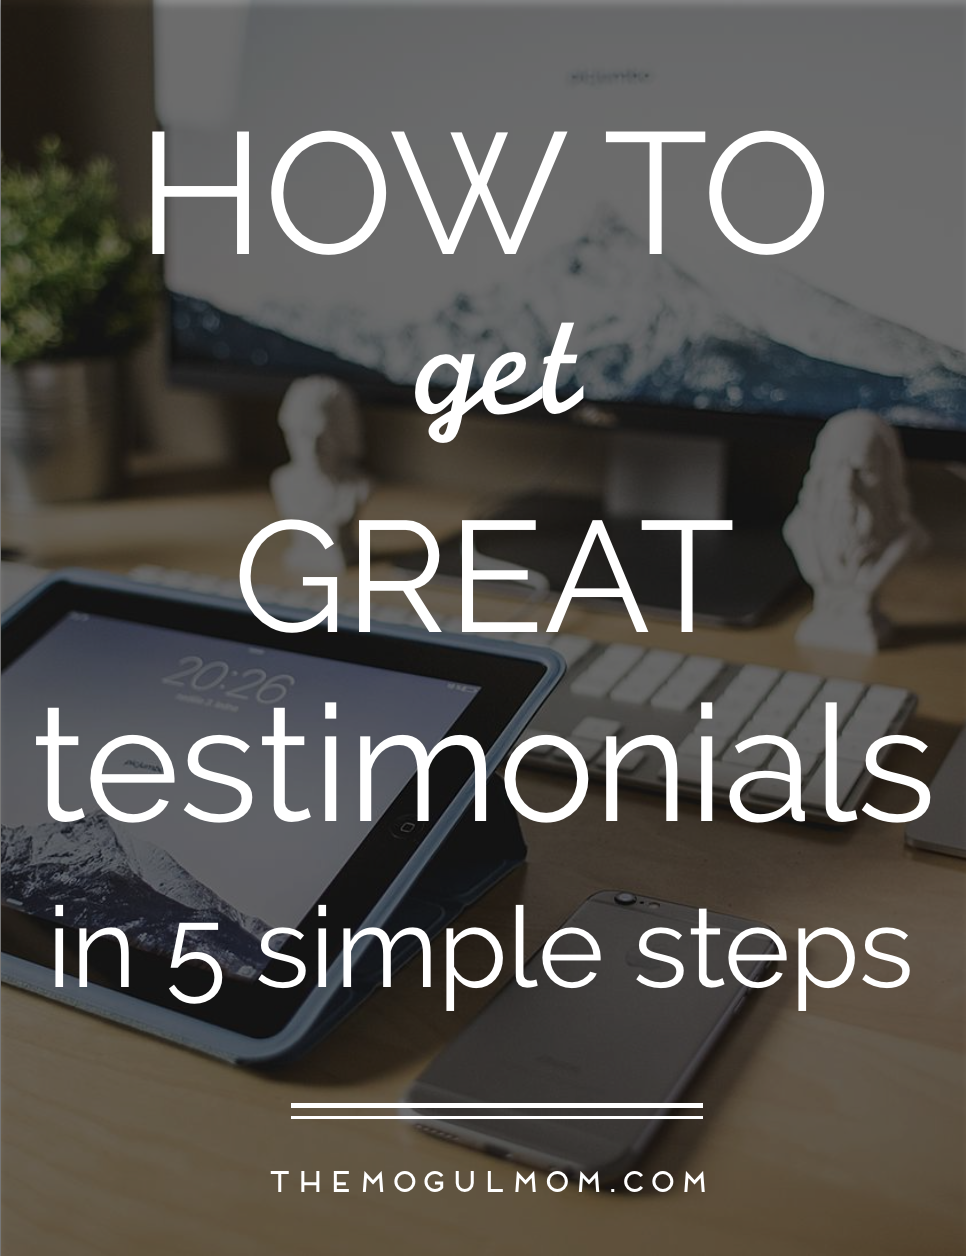 How to Get Great Testimonials in 5 Simple Steps [+ INFOGRAPHIC]